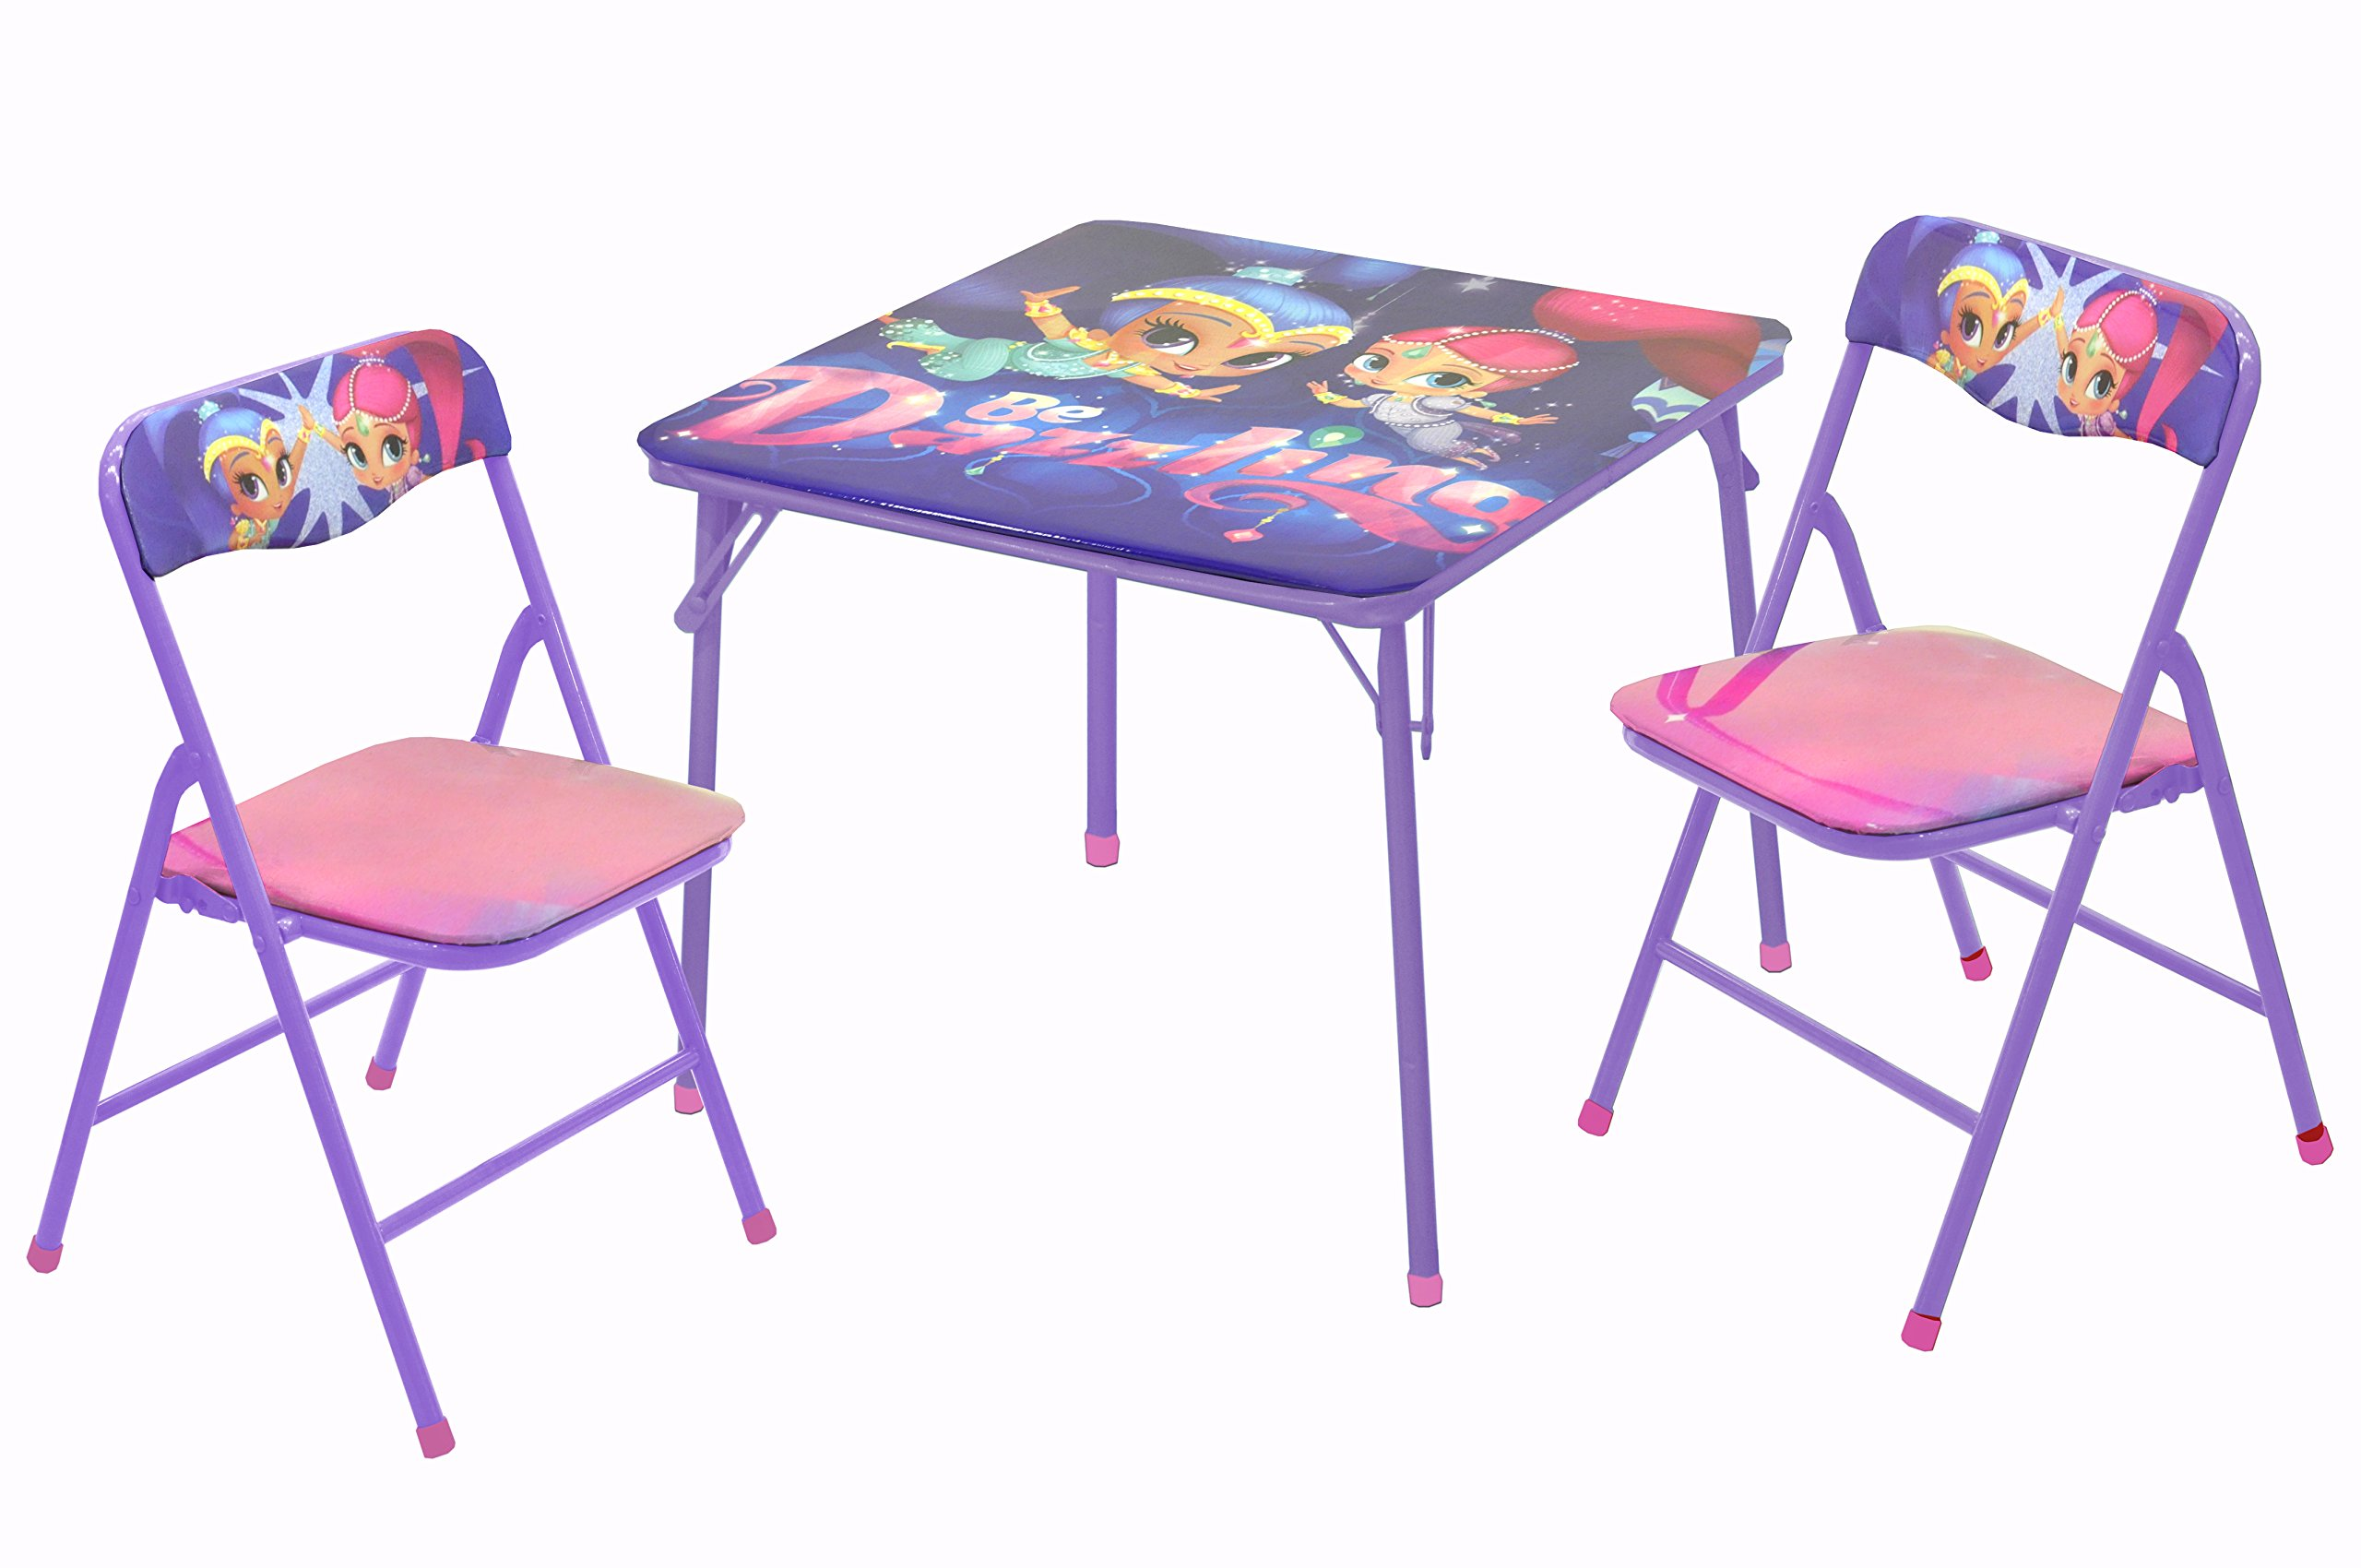 Nickelodeon Shimmer and Shine 3 Piece Table and Chair Set